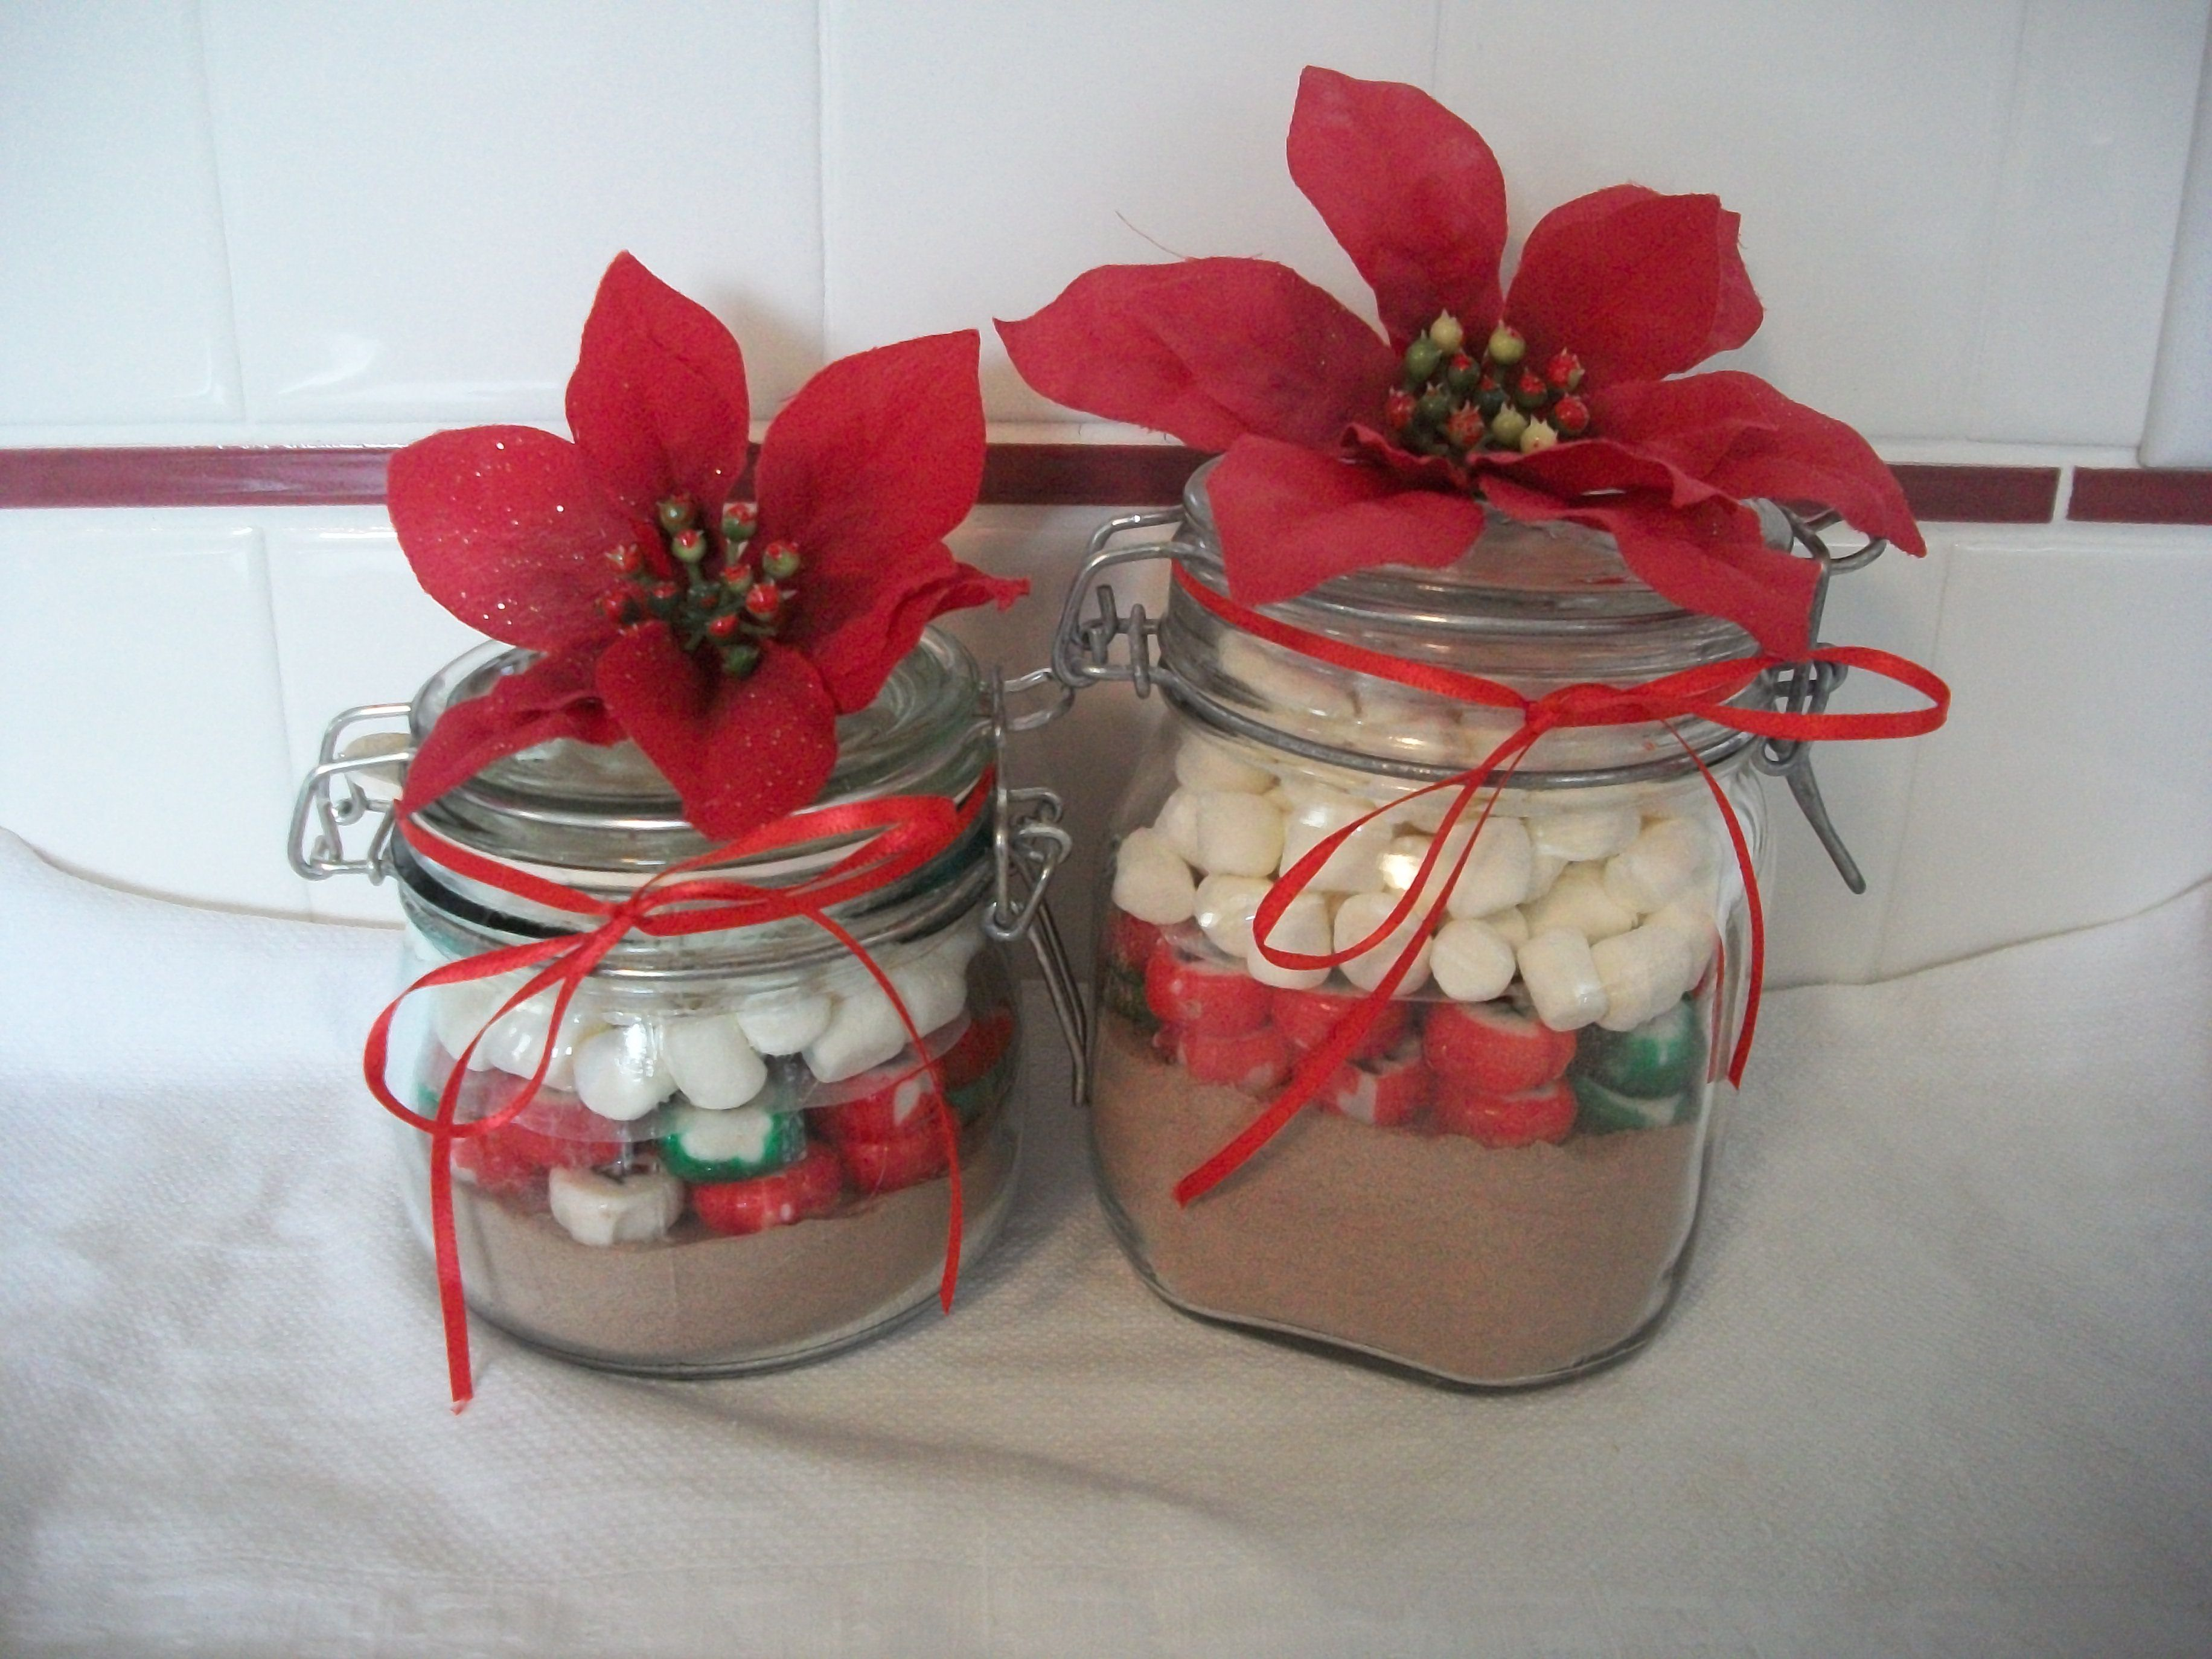 Christmas Craft Ideas For Gifts Part - 49: Quick Christmas Gift Craft: Hot Cocoa Jars This Is Day 12 Of Twleve Days Of Gifts  Kids Can Make!